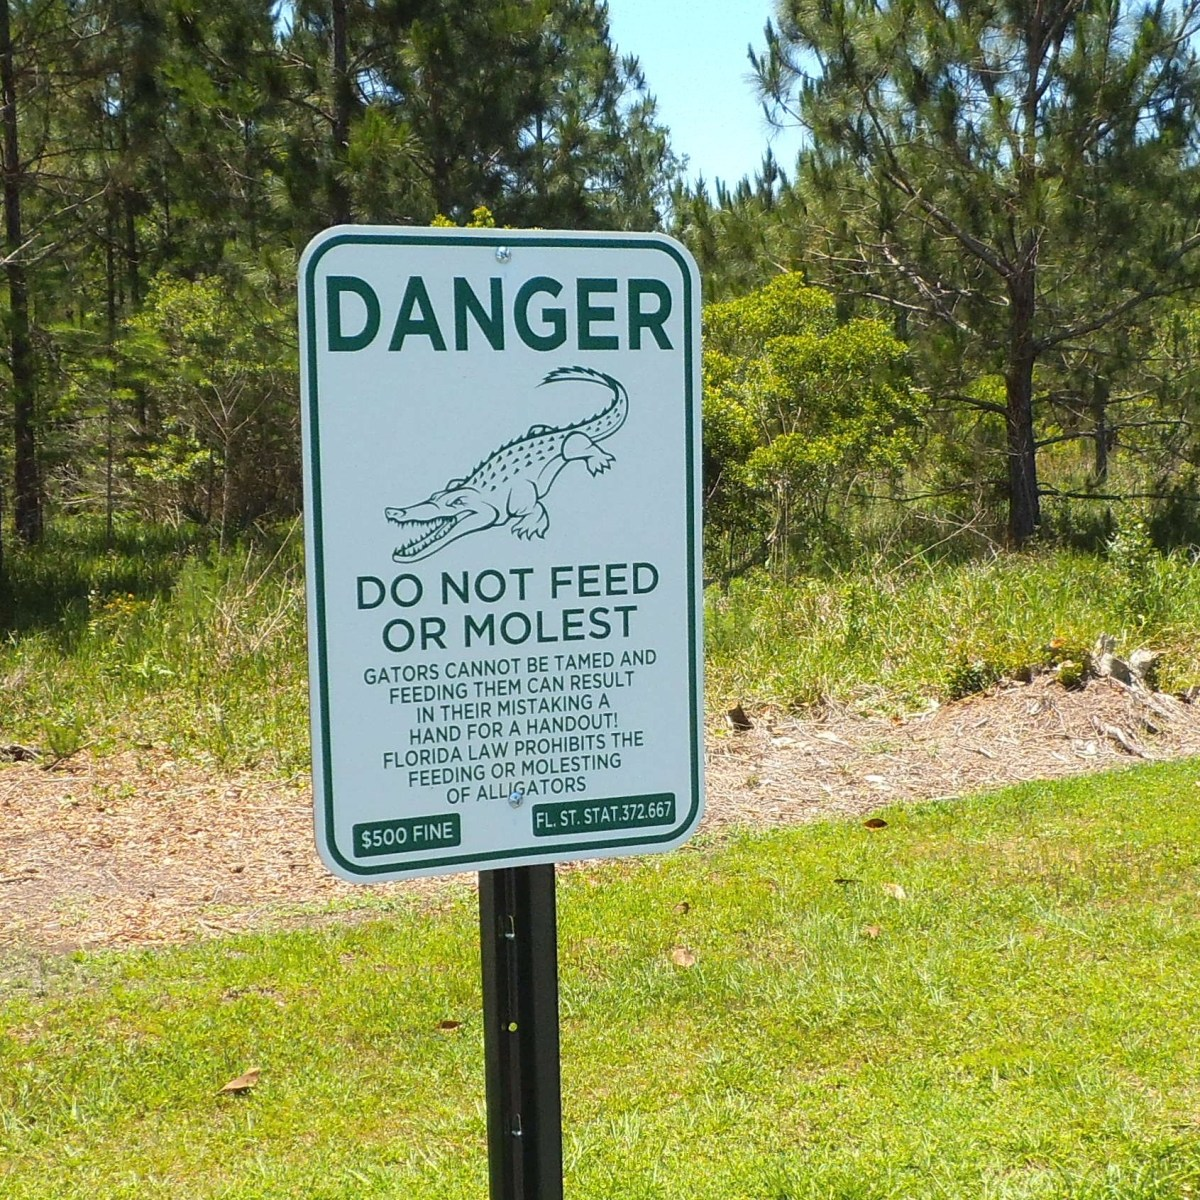 Always stay away from alligators.